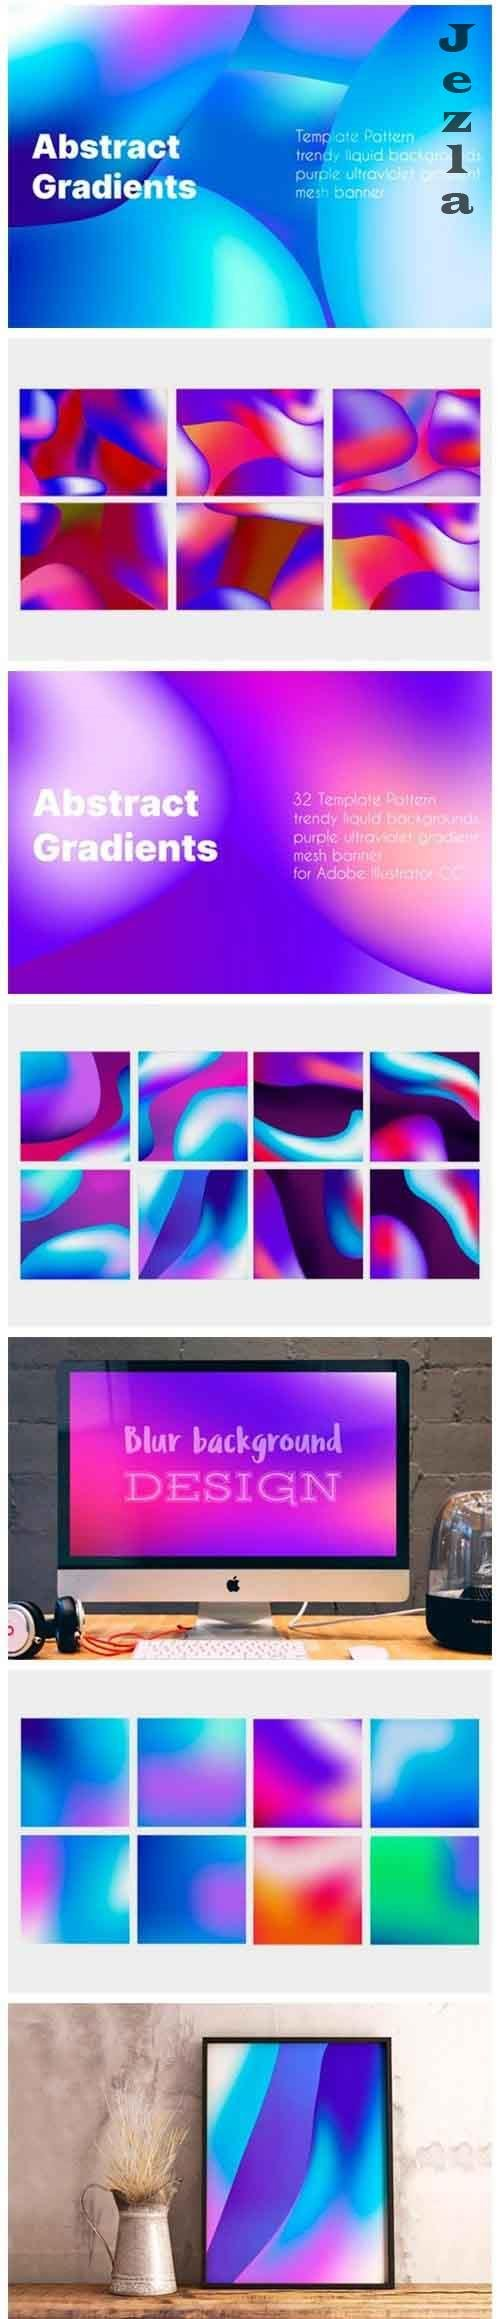 Backgrounds gradient template - 5737689